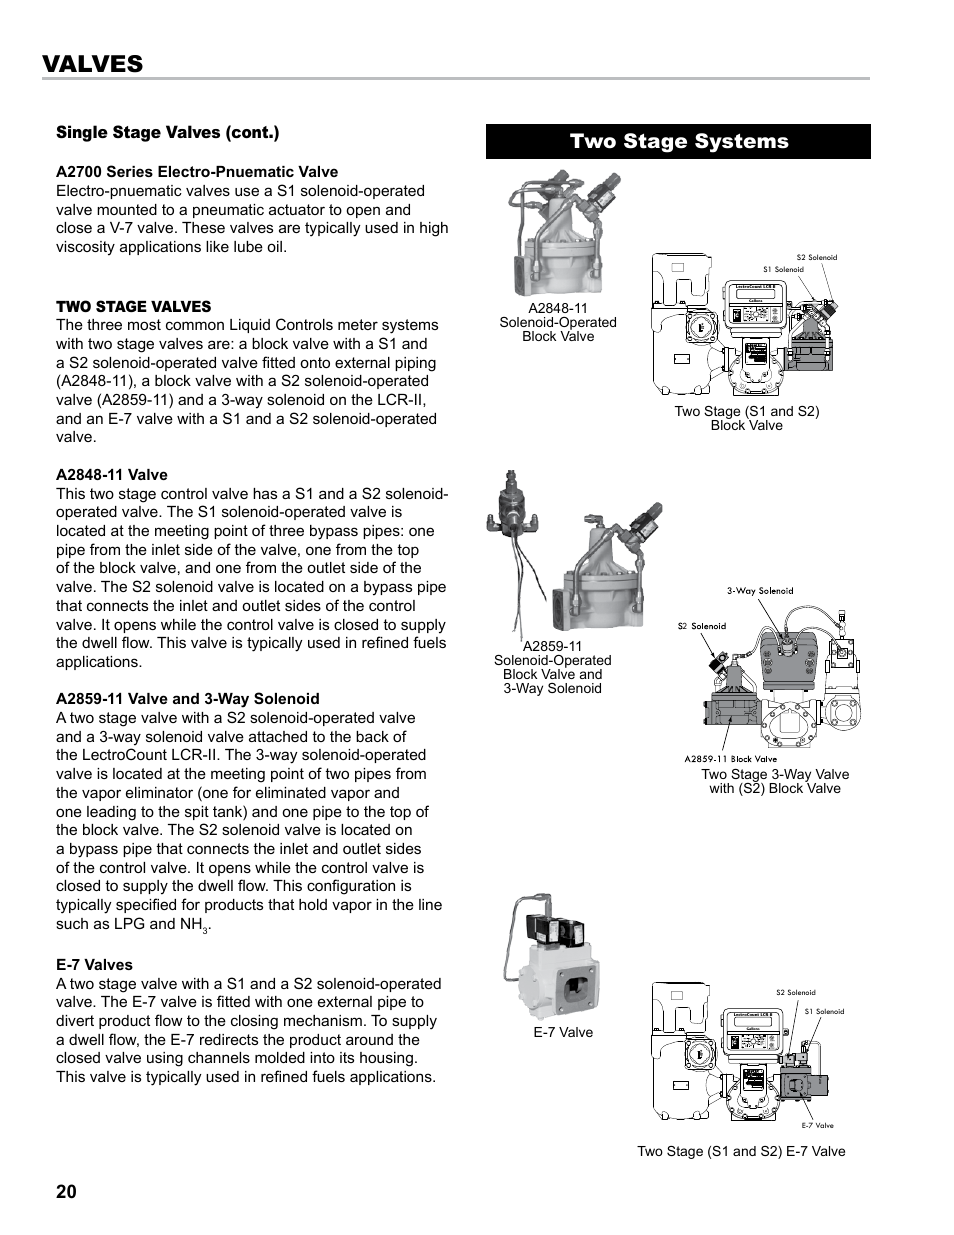 Valves Two Stage Systems Liquid Controls Lcr Ii Installation 3 Way Solenoid Valve Wiring Diagram E3655 E3656 User Manual Page 20 36